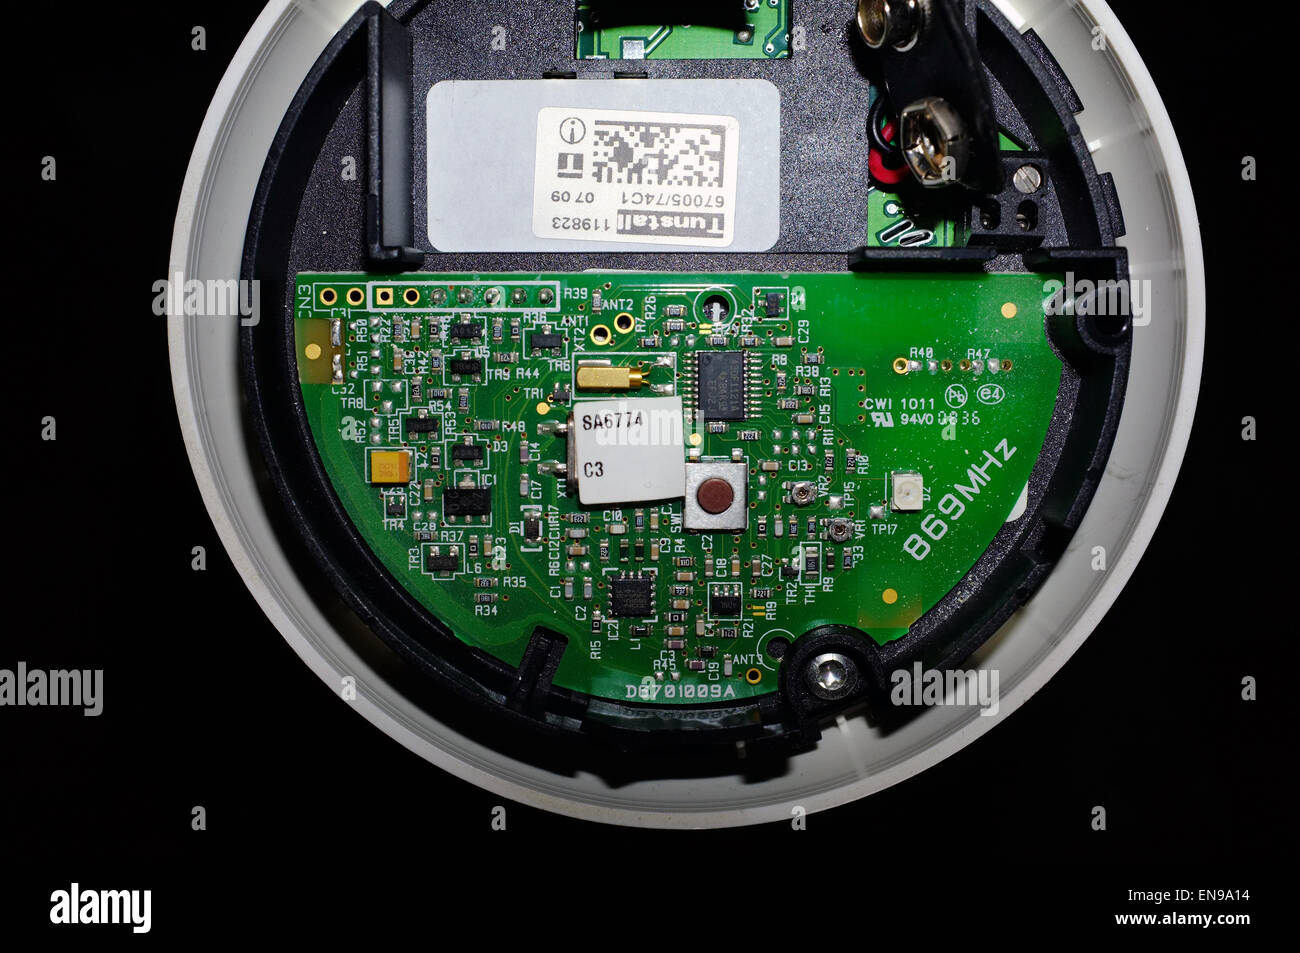 Fire Alarm Circuit Stock Photos Images Fridge Door Diagram The Exposed Boards And Wiring Inside A Smoke Detector Image